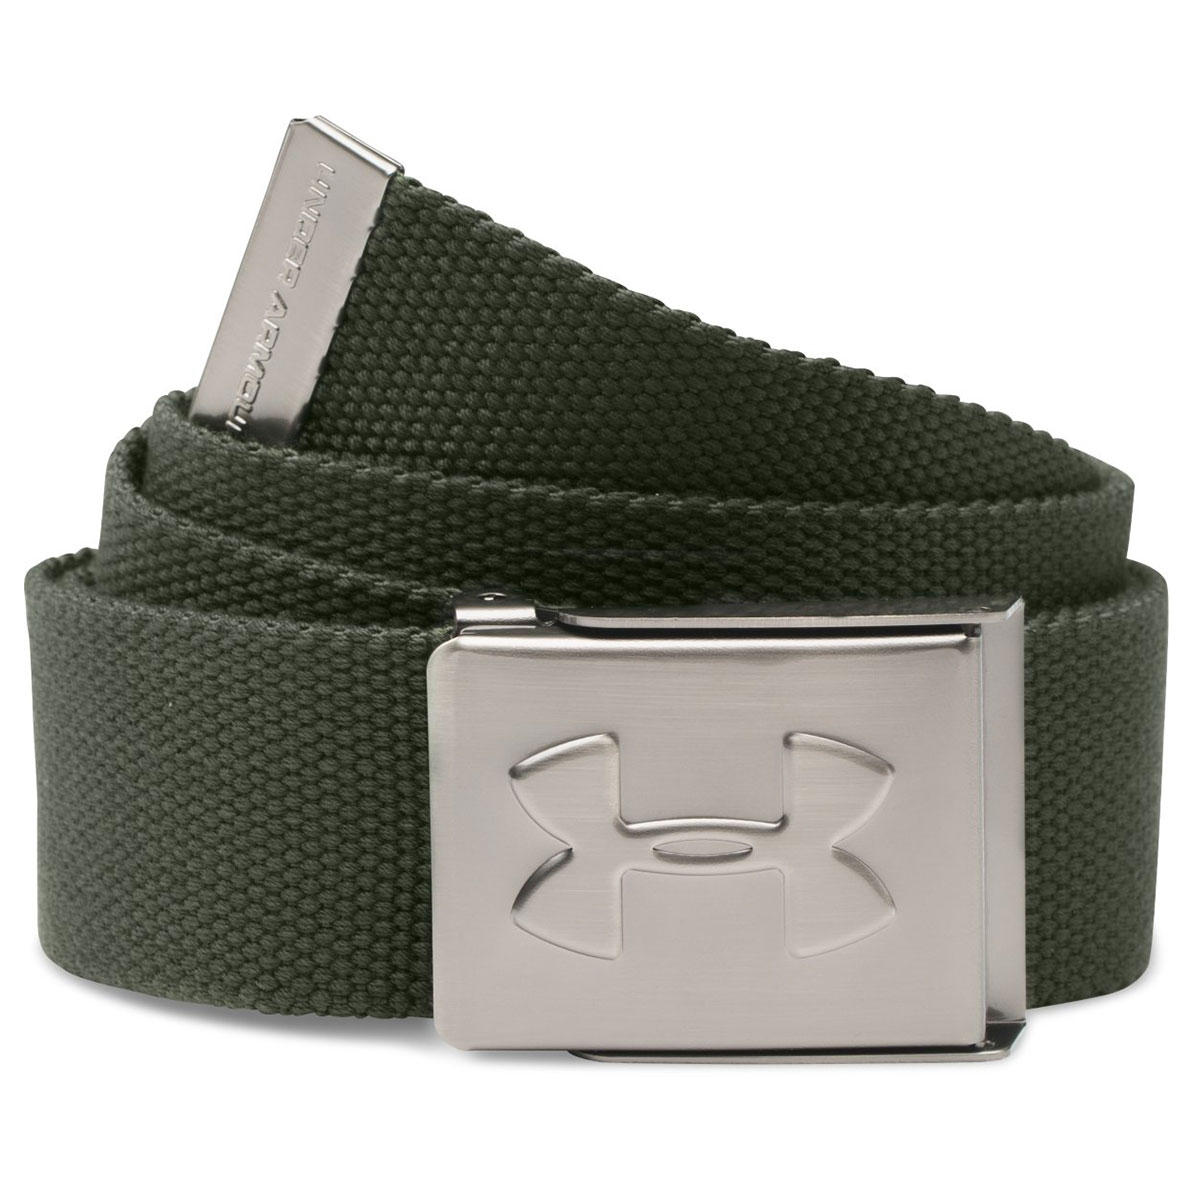 Under-Armour-Homme-UA-Sangle-Toile-Golf-Ceinture-